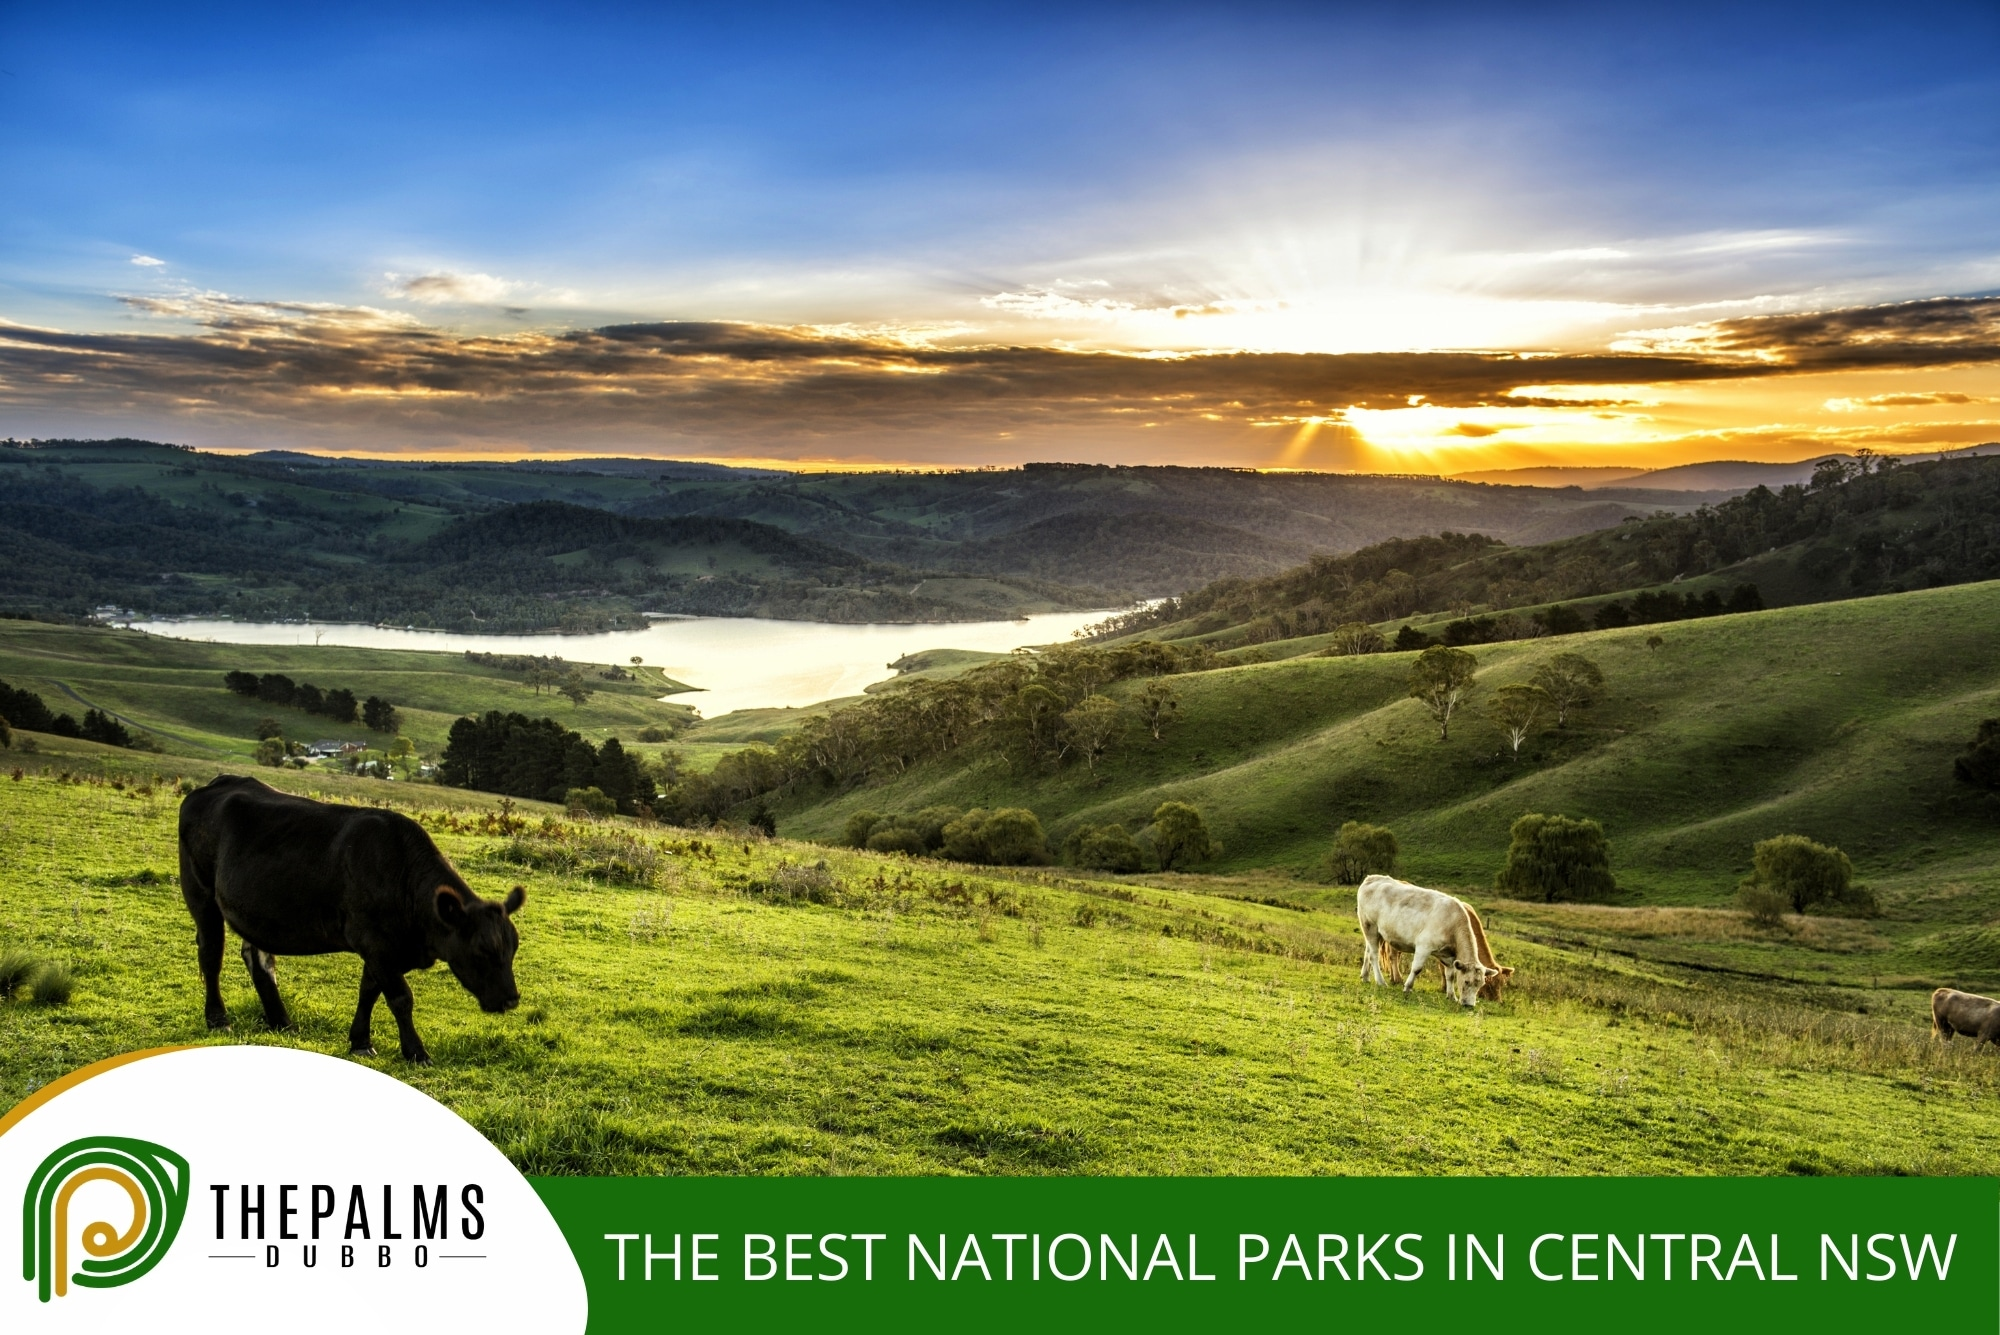 The Best National Parks in Central NSW